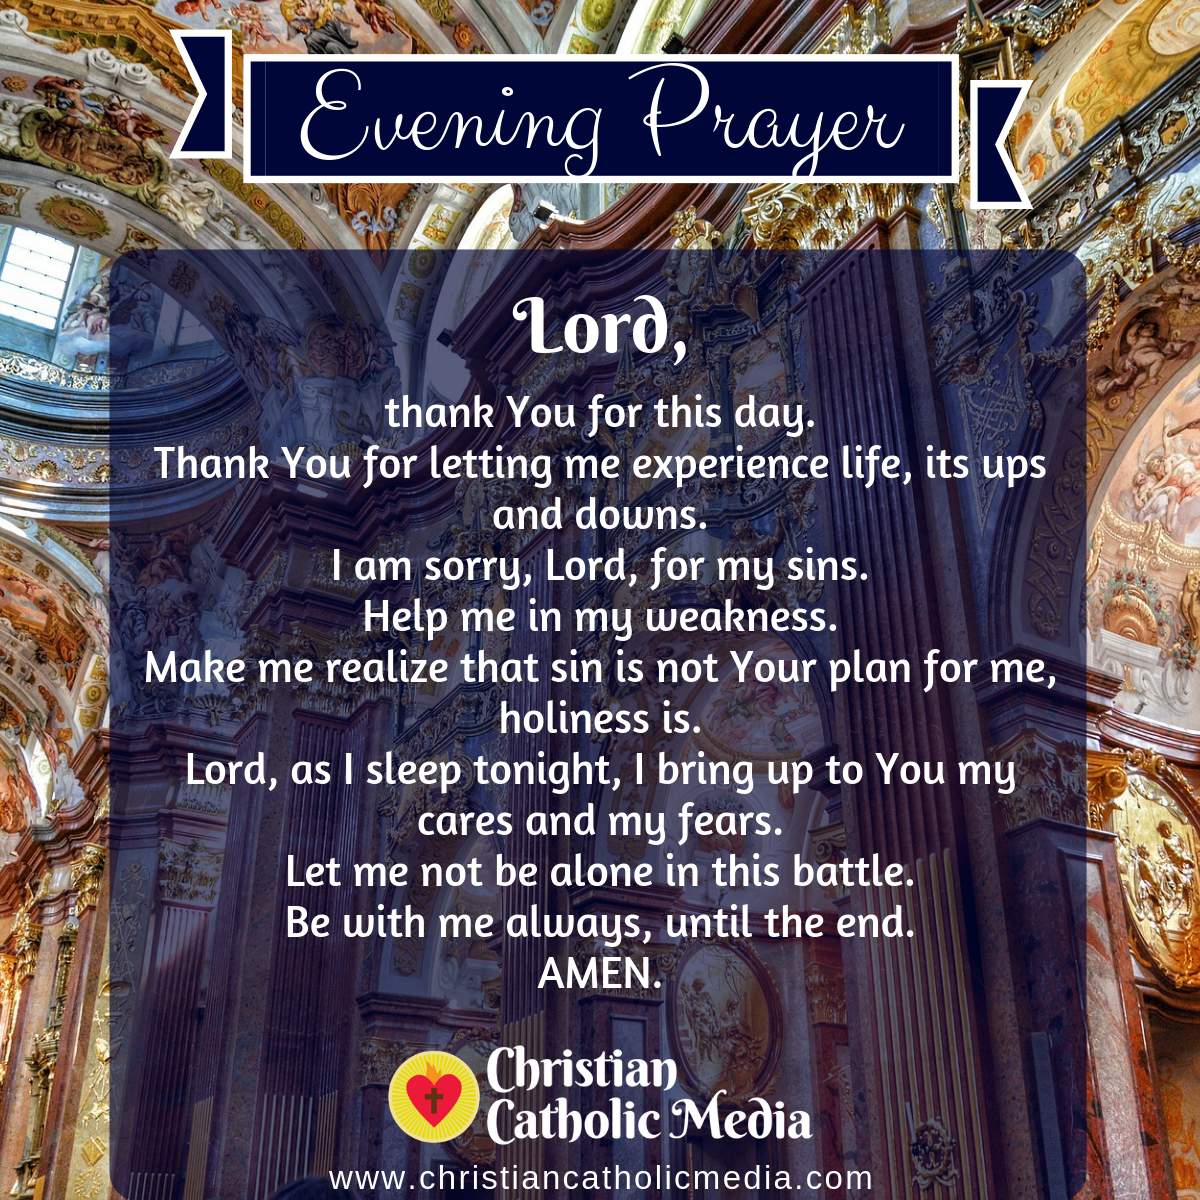 Evening Prayer Catholic Wednesday 5-13-2020